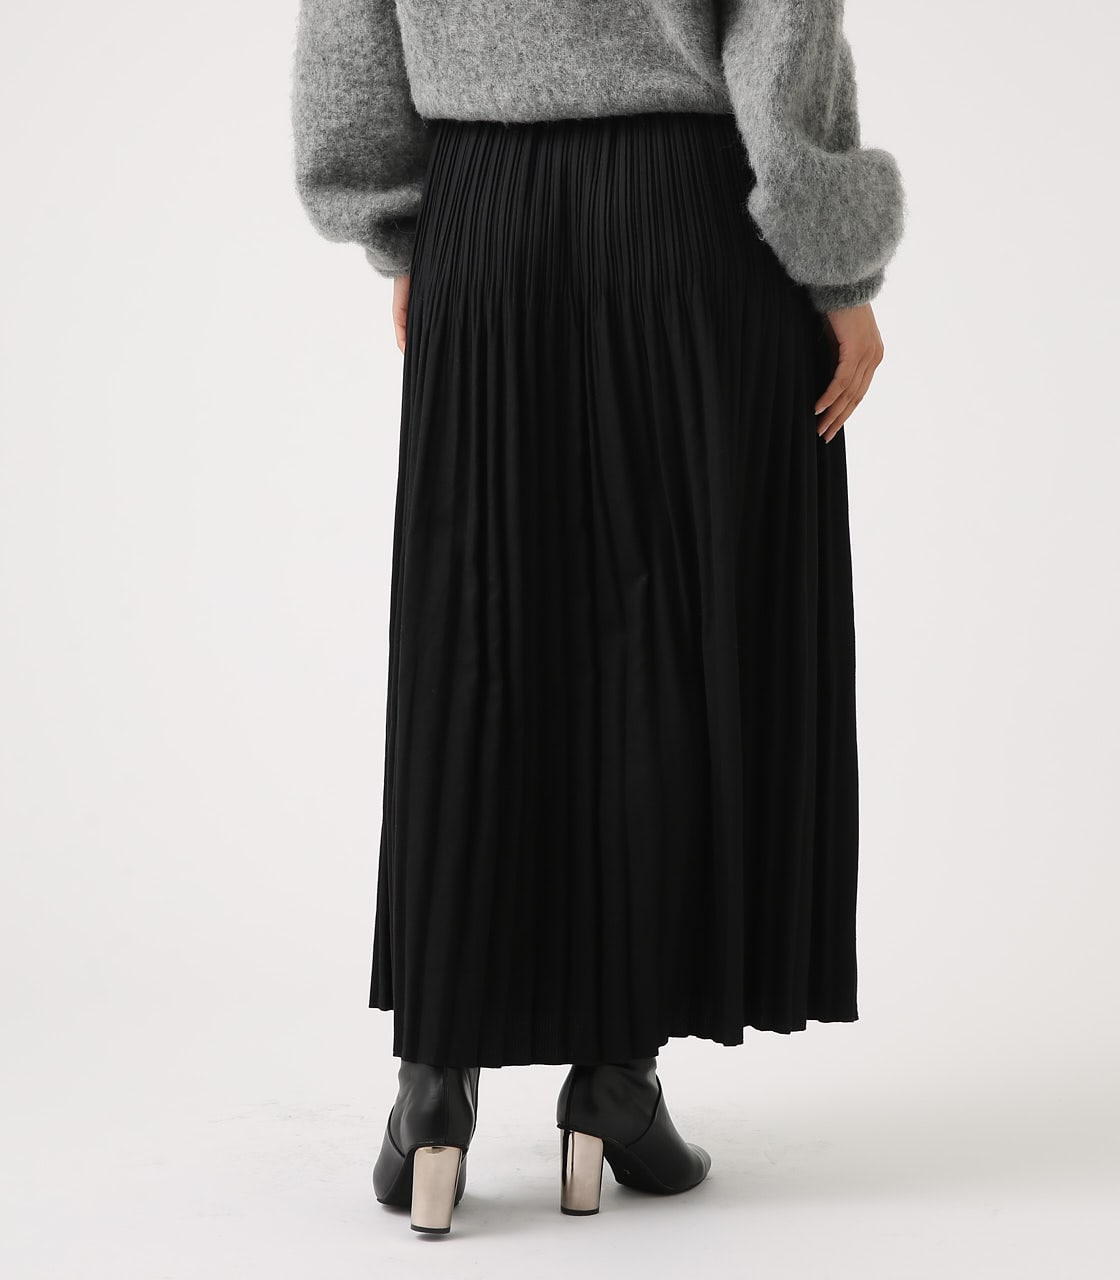 【AZUL BY MOUSSY】ベーシックプリーツスカート 詳細画像 BLK 7